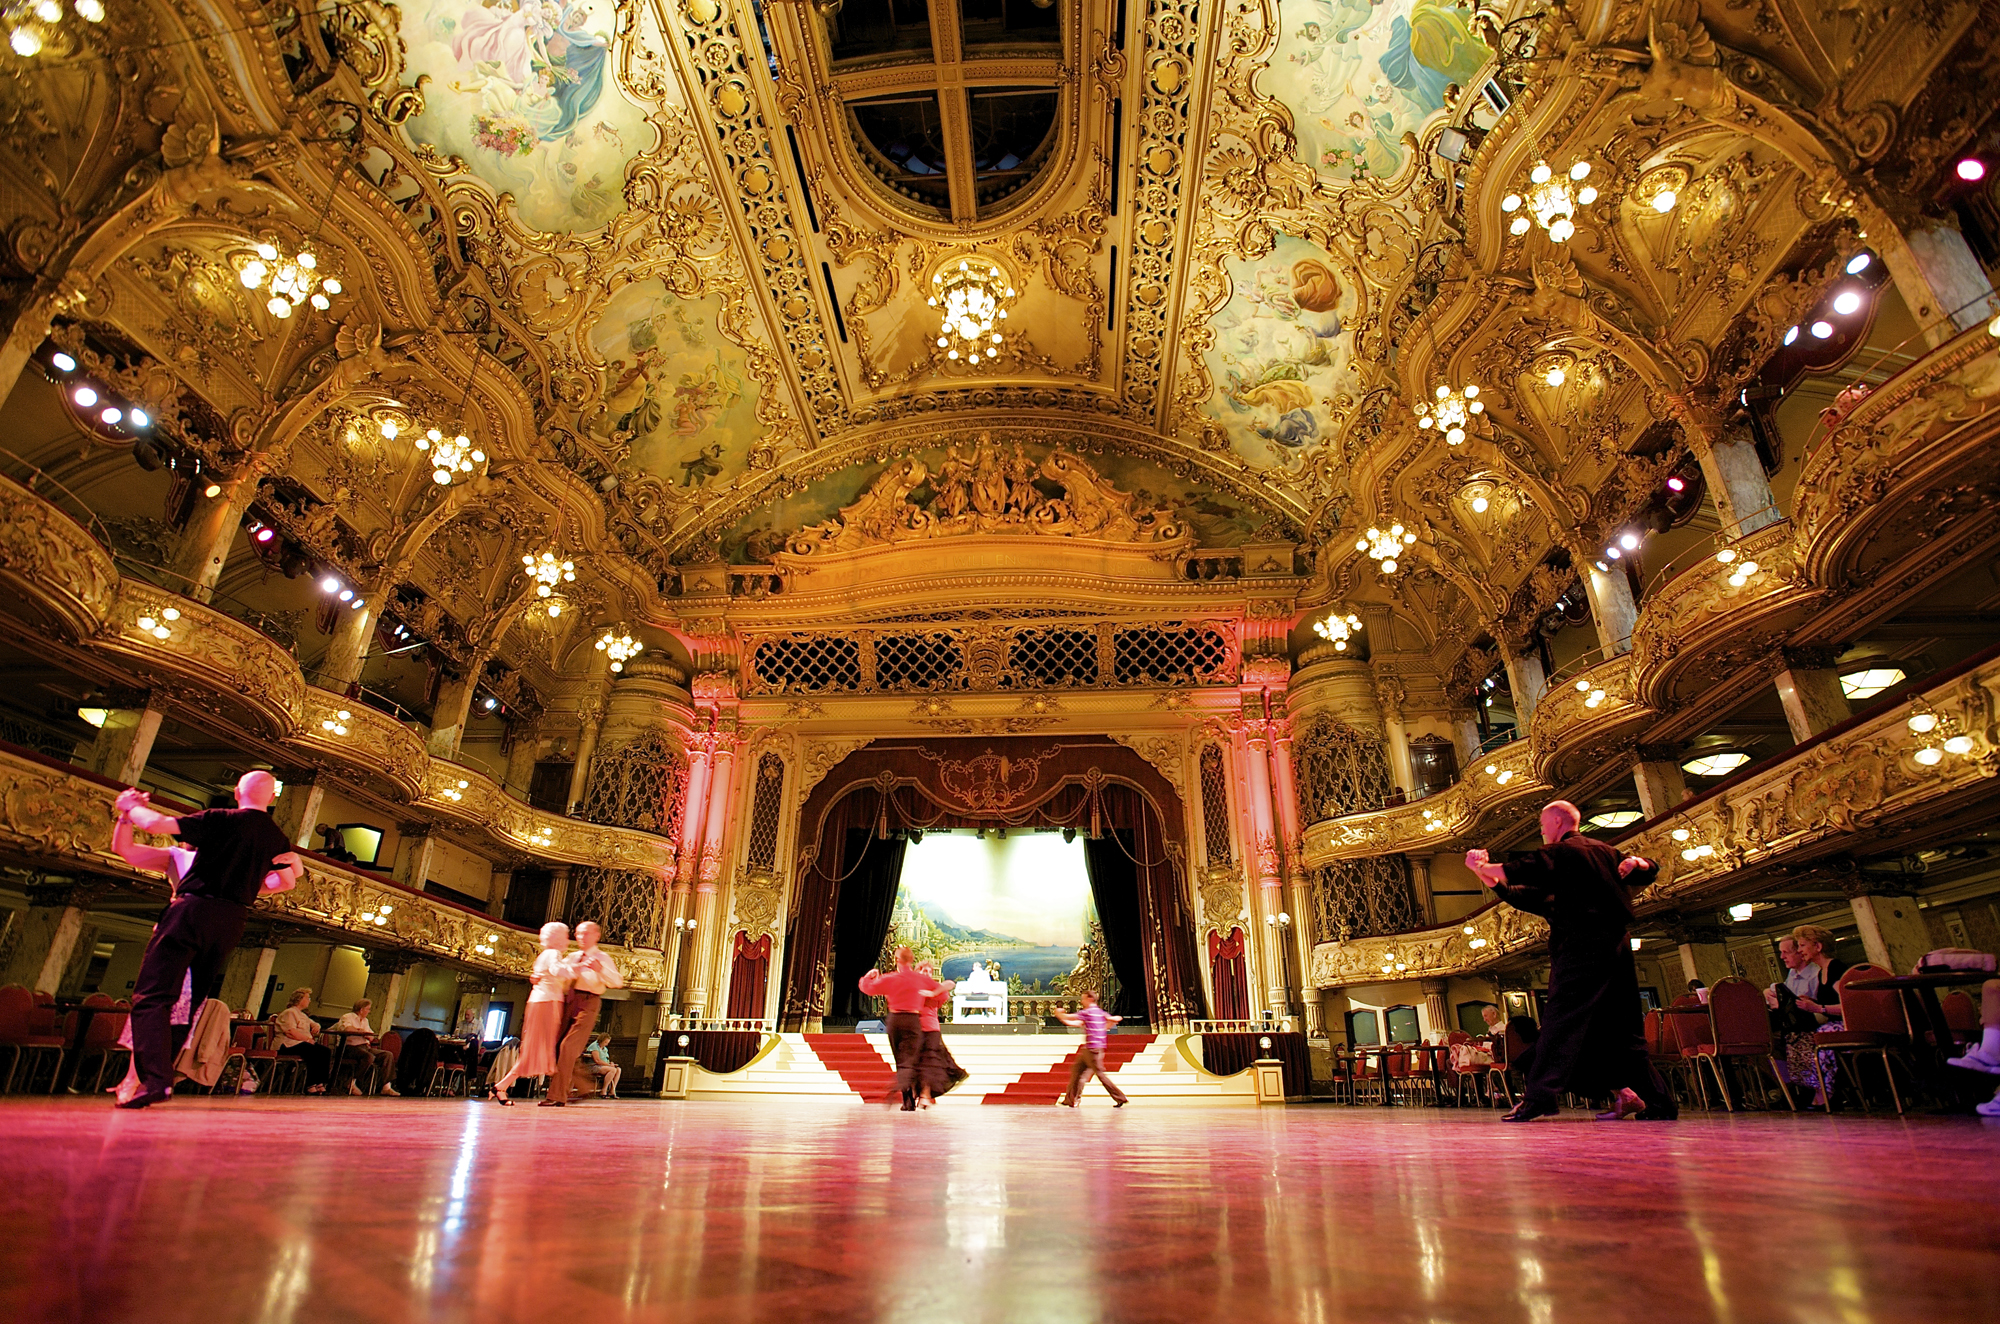 Blackpool Tower Attraction Ballroom With Dancers